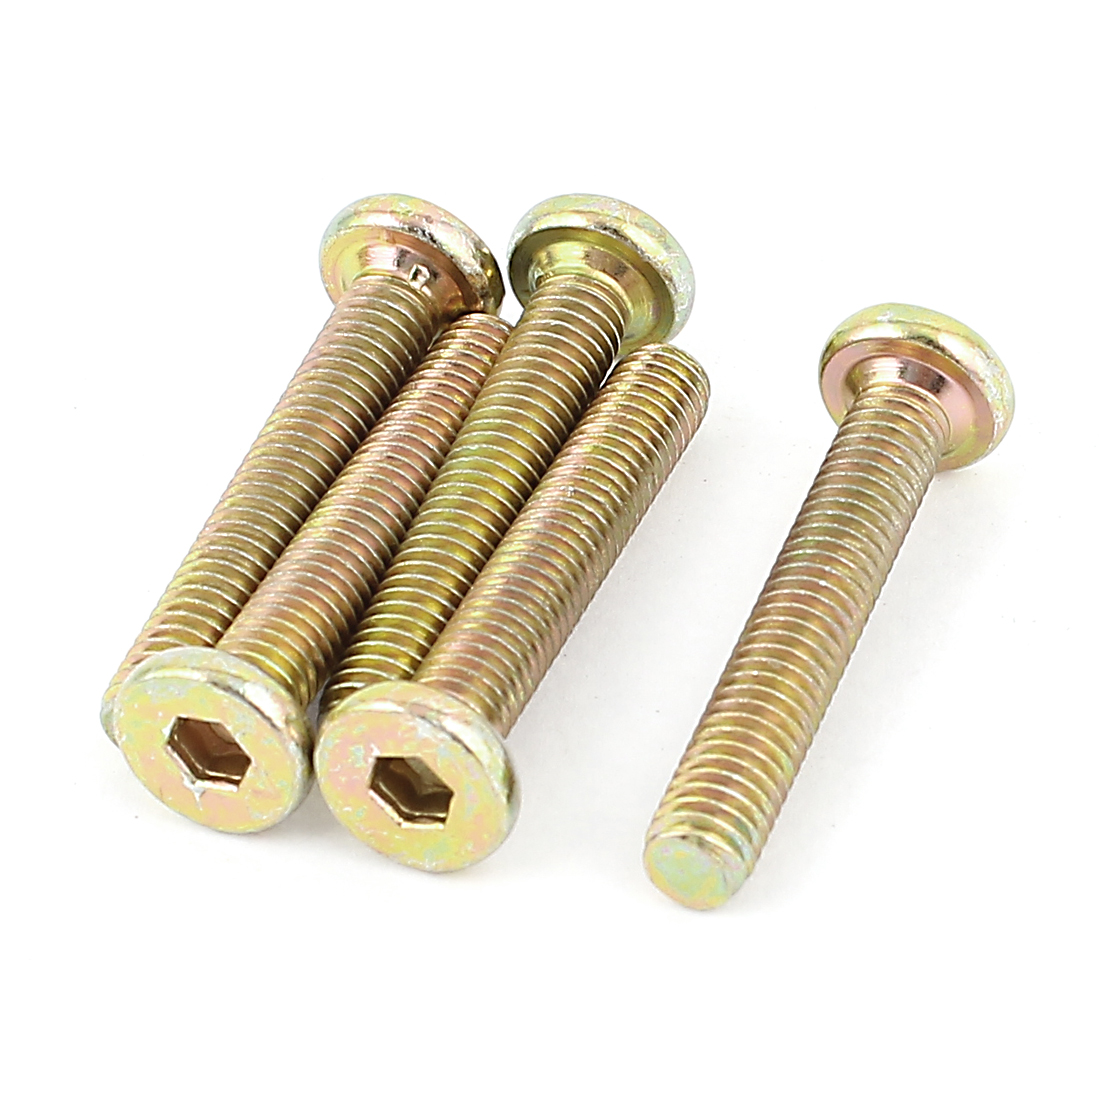 Uxcell M6 x 35mm Full Thread Hex Socket Head Cap Screws Bolts Bronze Tone (5-pack)